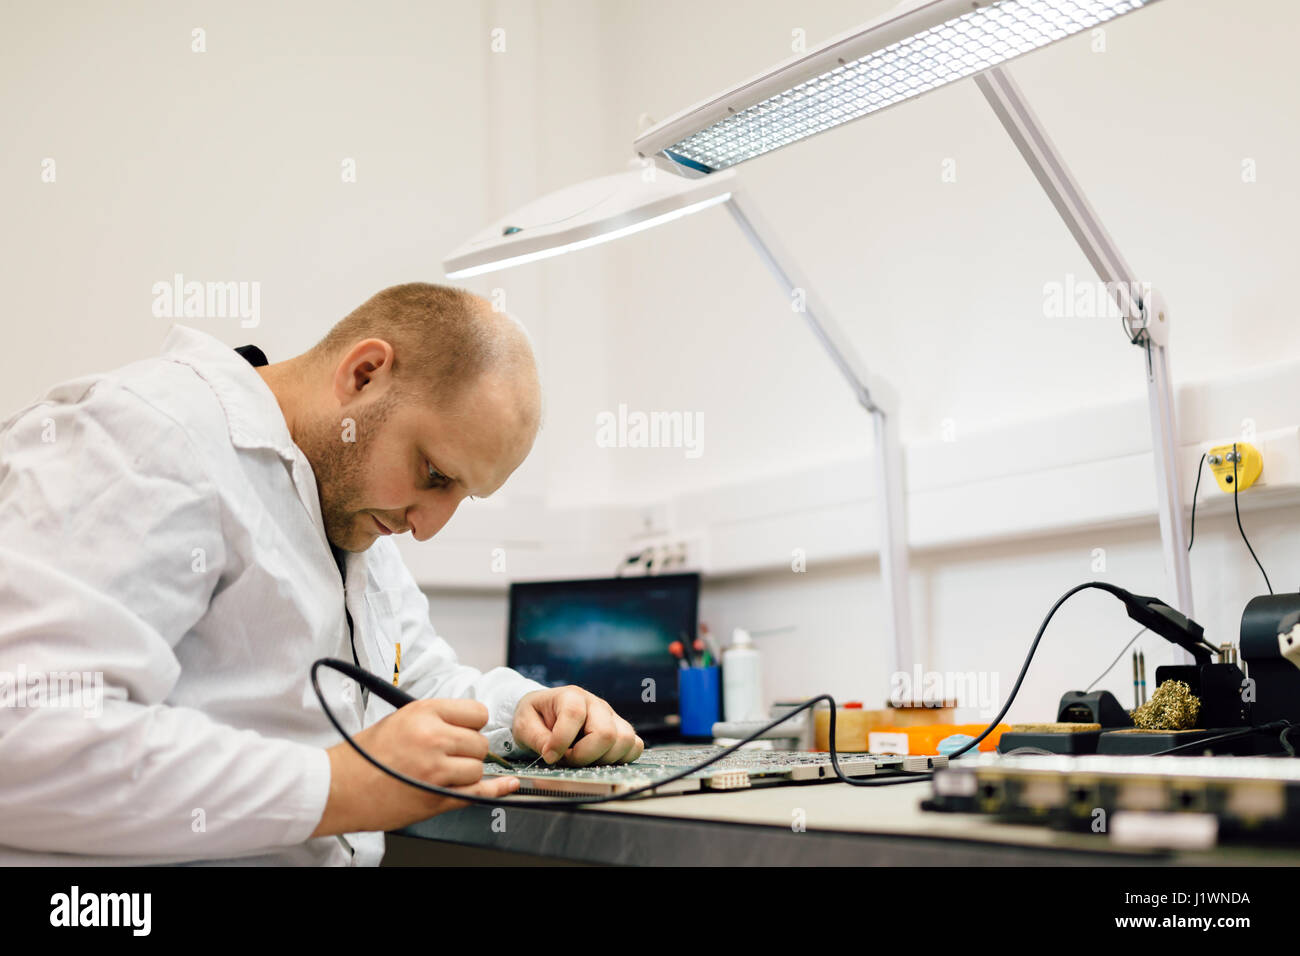 Technician fixing motherboard by soldering chips - Stock Image